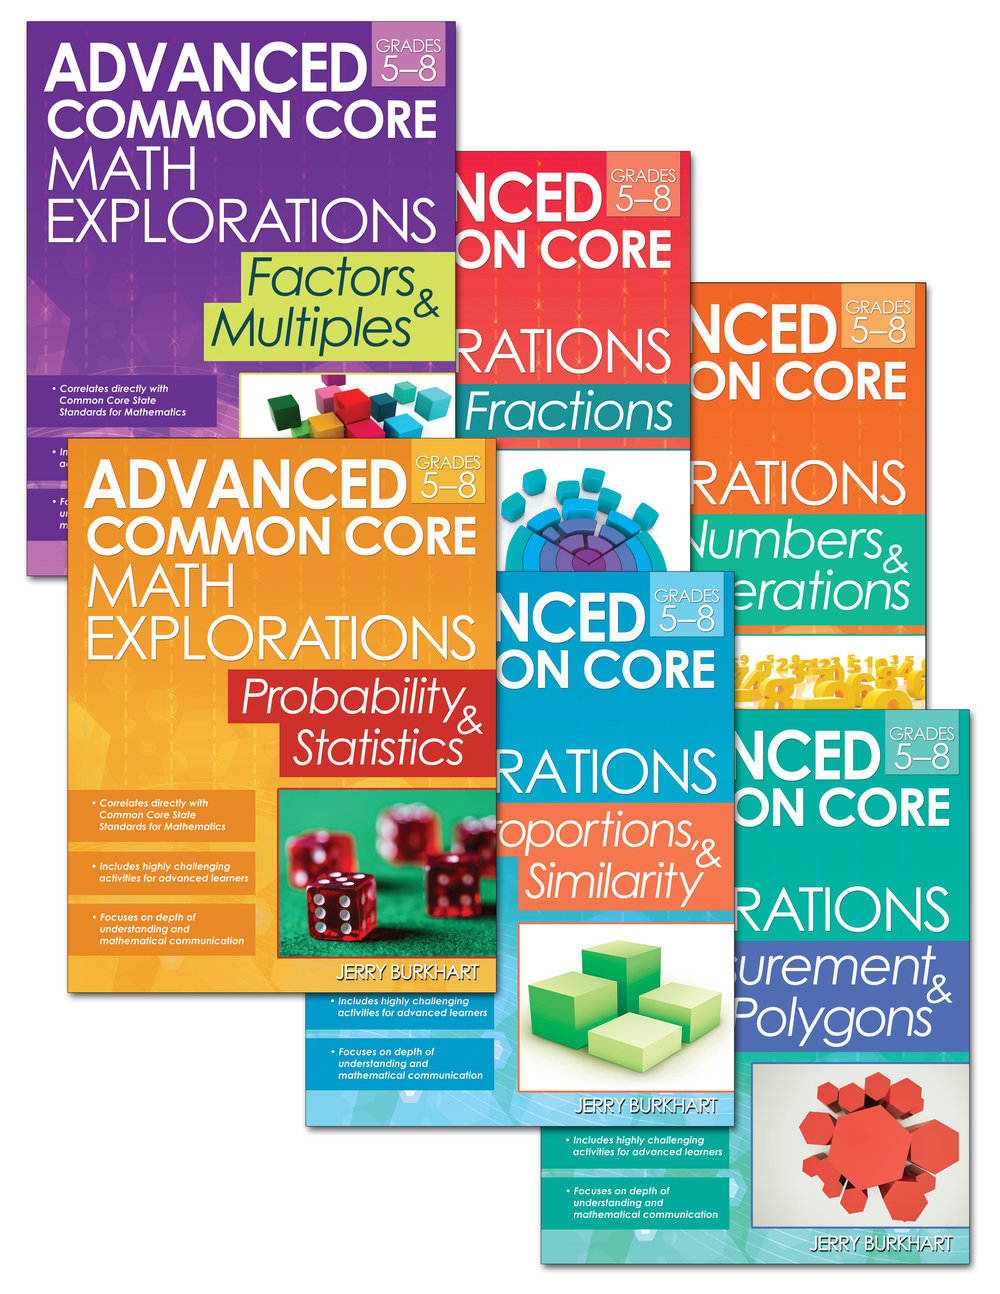 Advanced CC Math Explorations Covers.jpg